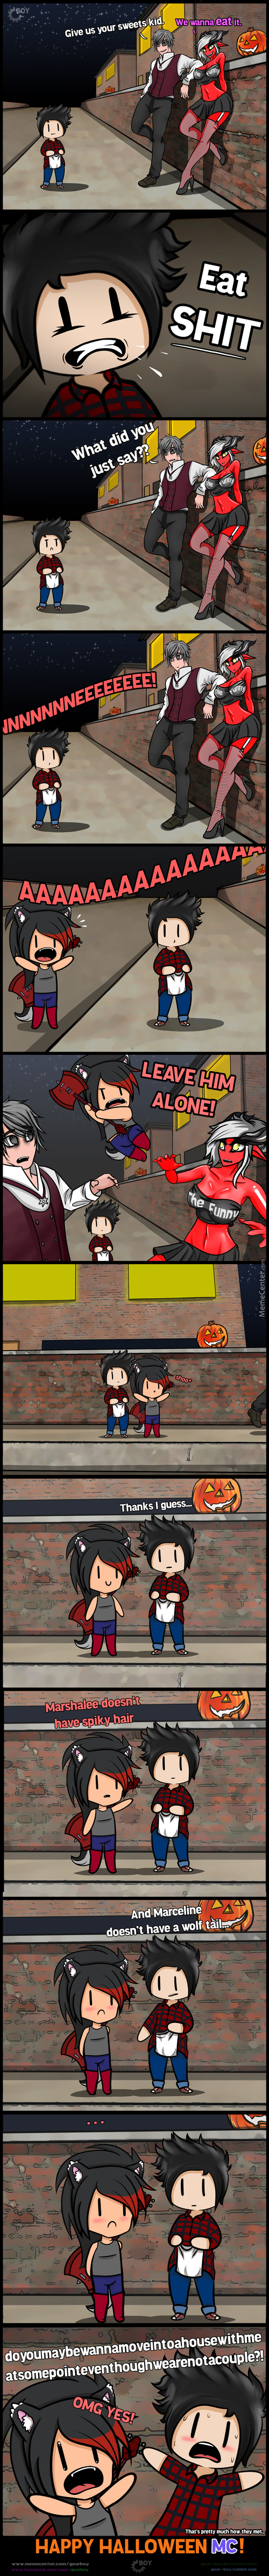 Once Upon A Hal(Lol)Ween...